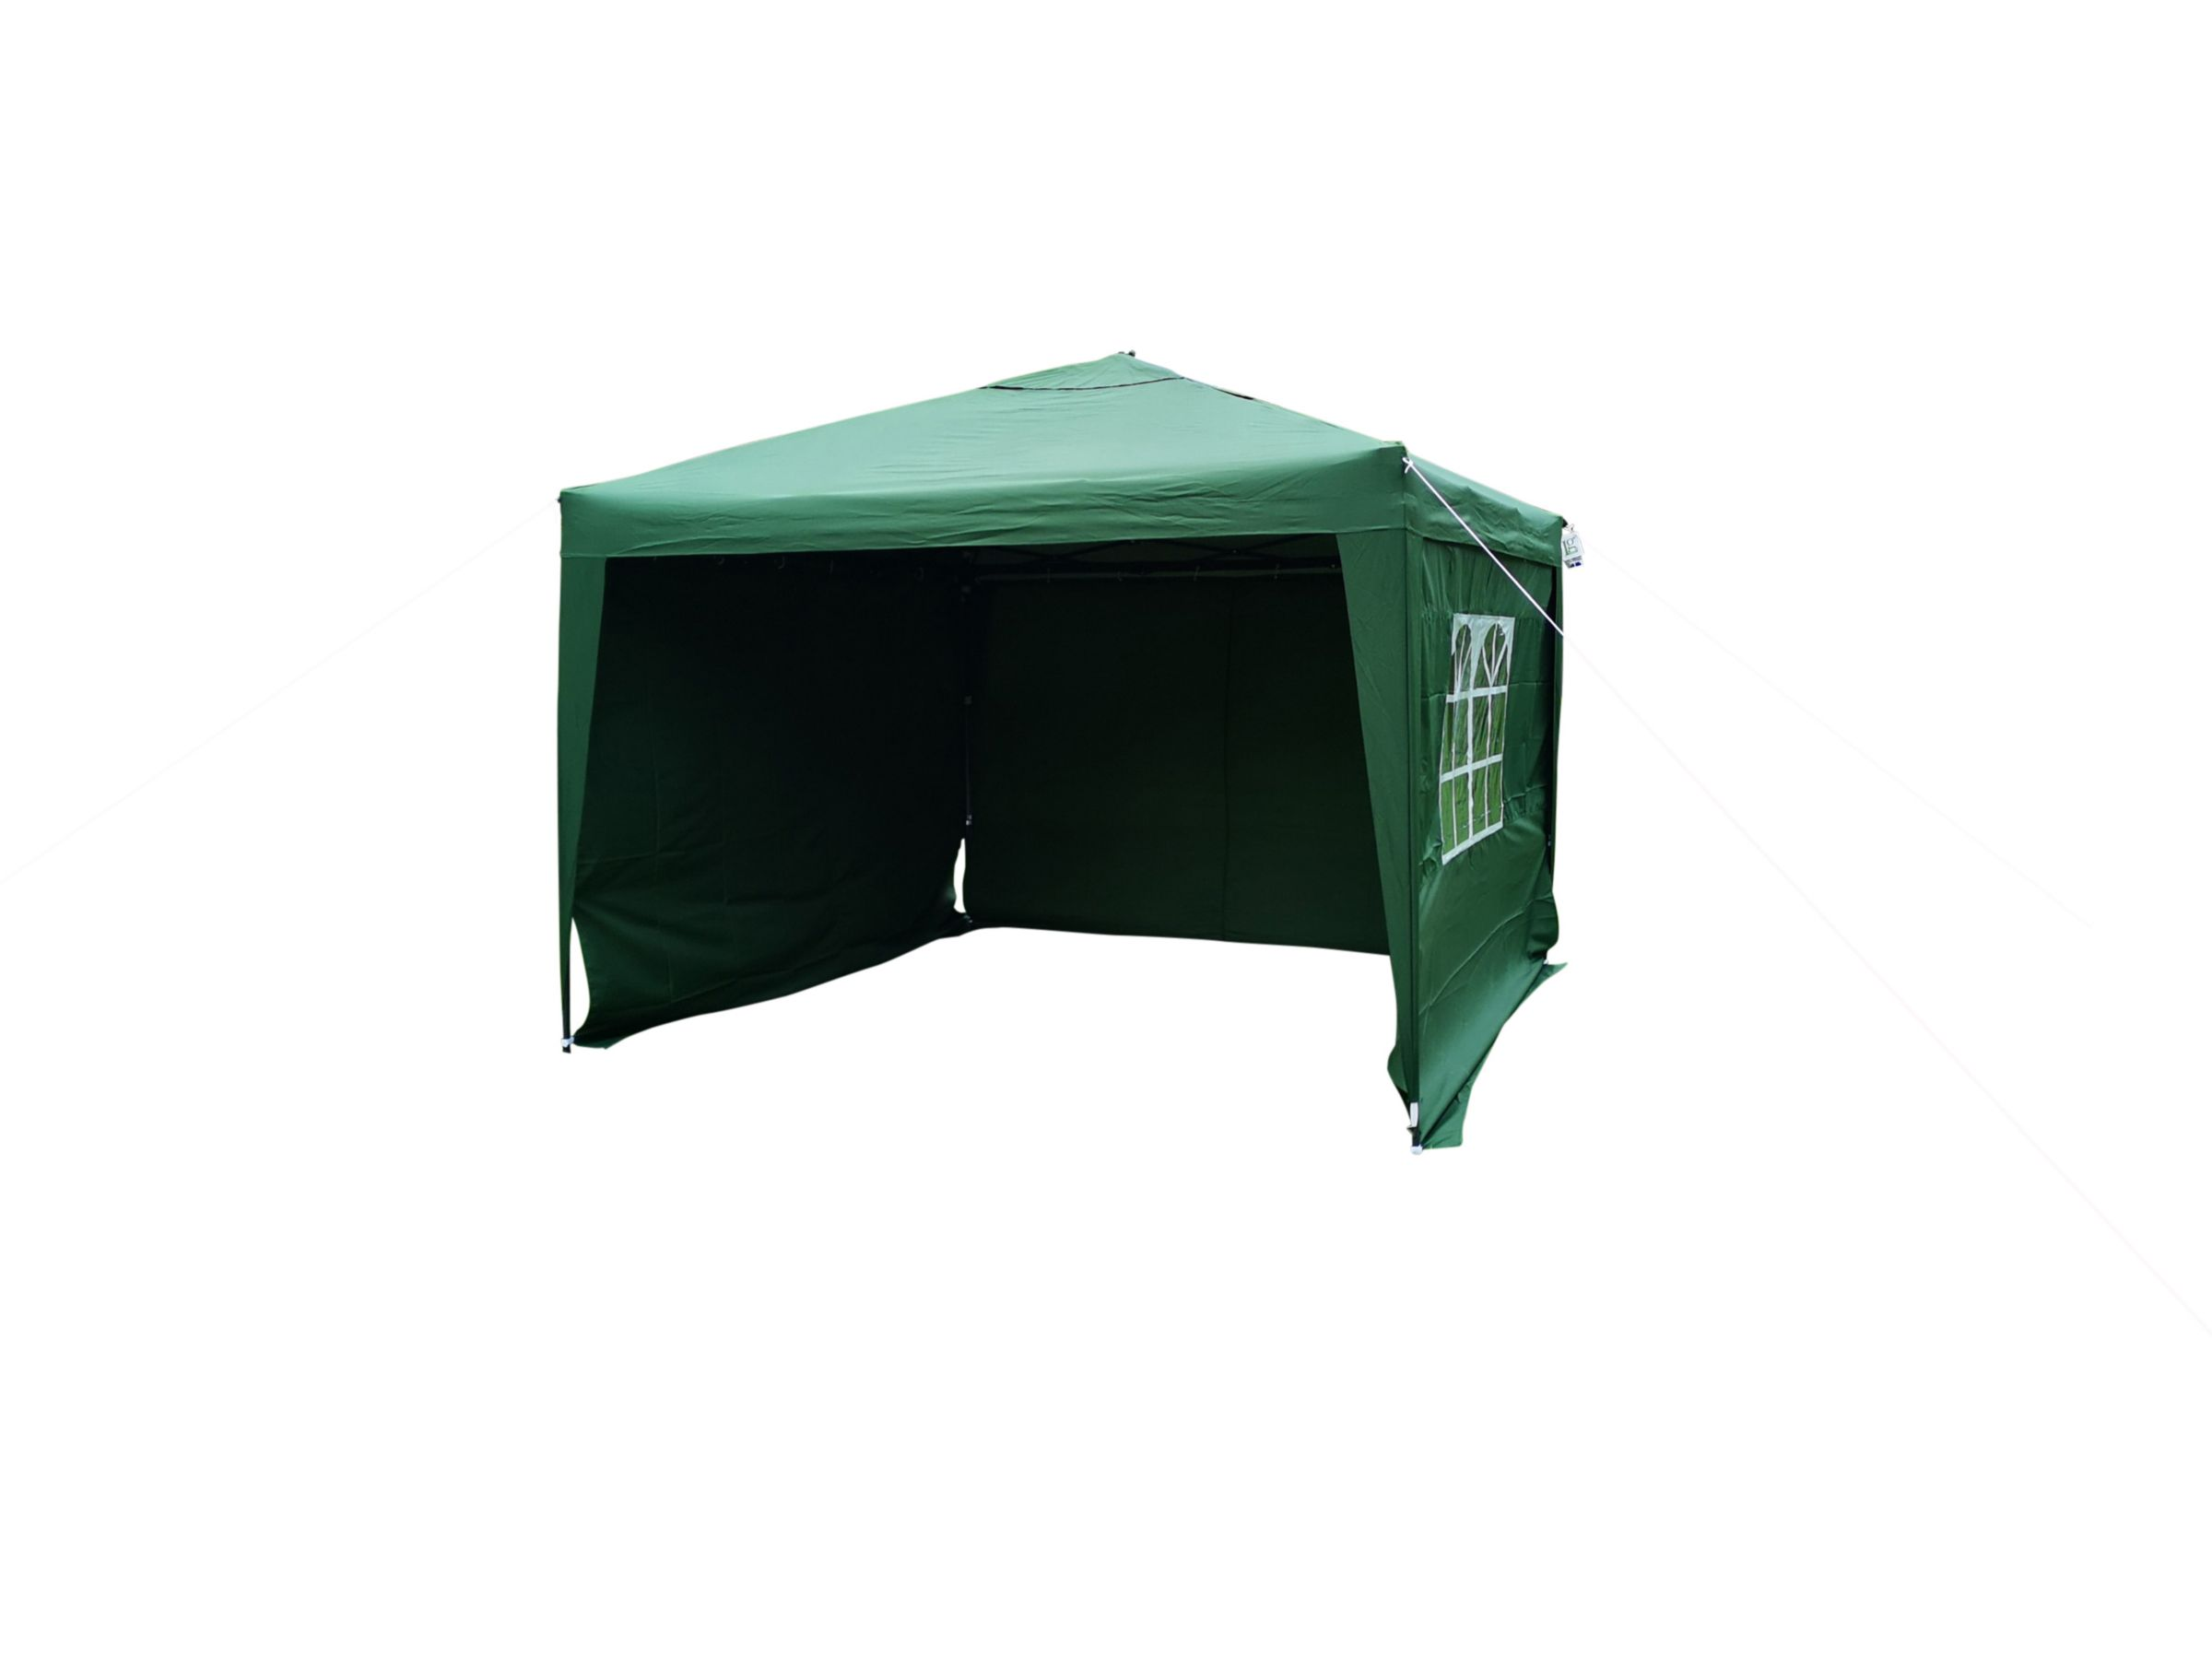 LG Outdoor LG Outdoor Hamilton Pop Up 3m Gazebo Side Walls, Green